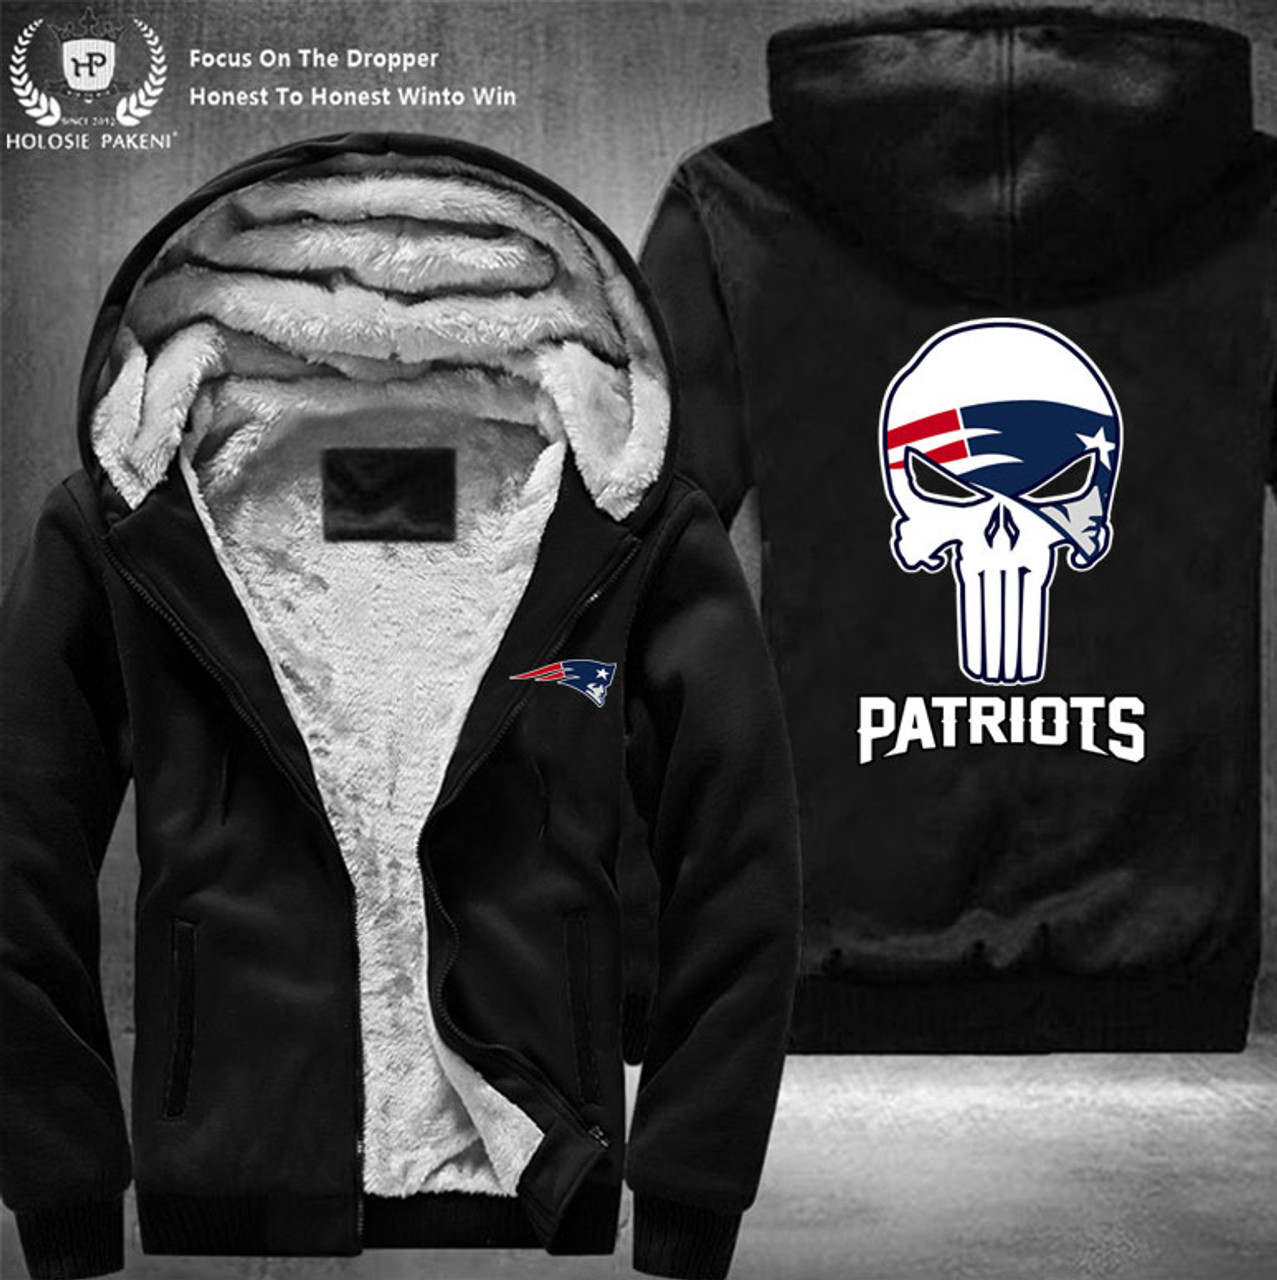 e51c0fff **(OFFICIAL-N.F.L.NEW-ENGLAND-PATRIOTS-FLEECE-LINNED-ZIPPERED-HOODIES/NICE-CUSTOM-3D-EFFECT-GRAPHIC-DOUBLE-SIDED-PRINTING/WITH-OFFICIAL-PATRIOTS-PUNIS...